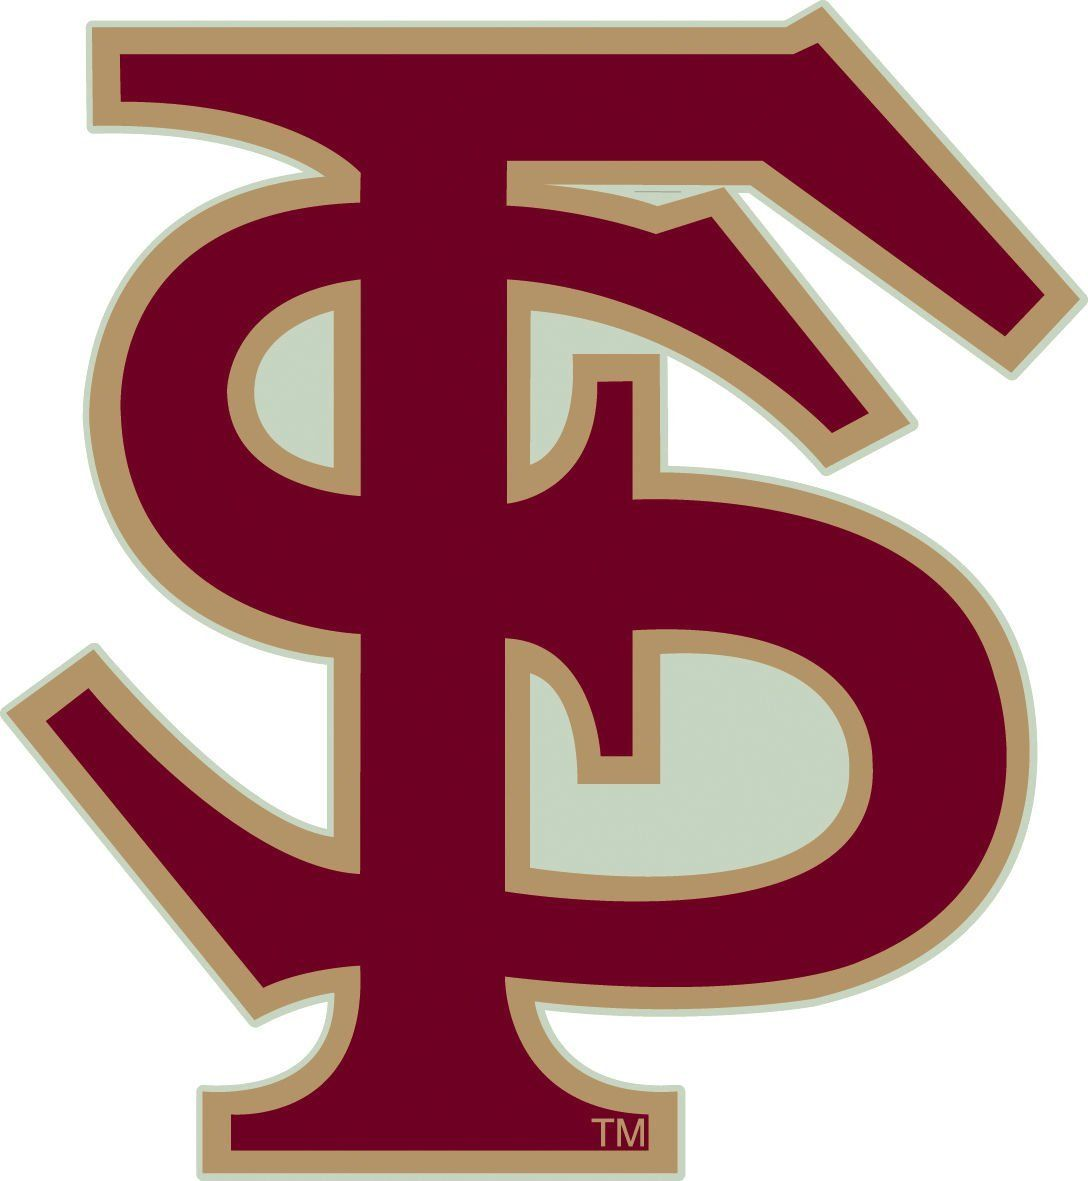 E7d2b09ce8655553752157c144dd2a86g 10881181 football party florida state seminoles alternate logo on chris creamers sports logos page sportslogos a virtual museum of sports logos uniforms and historical items voltagebd Choice Image